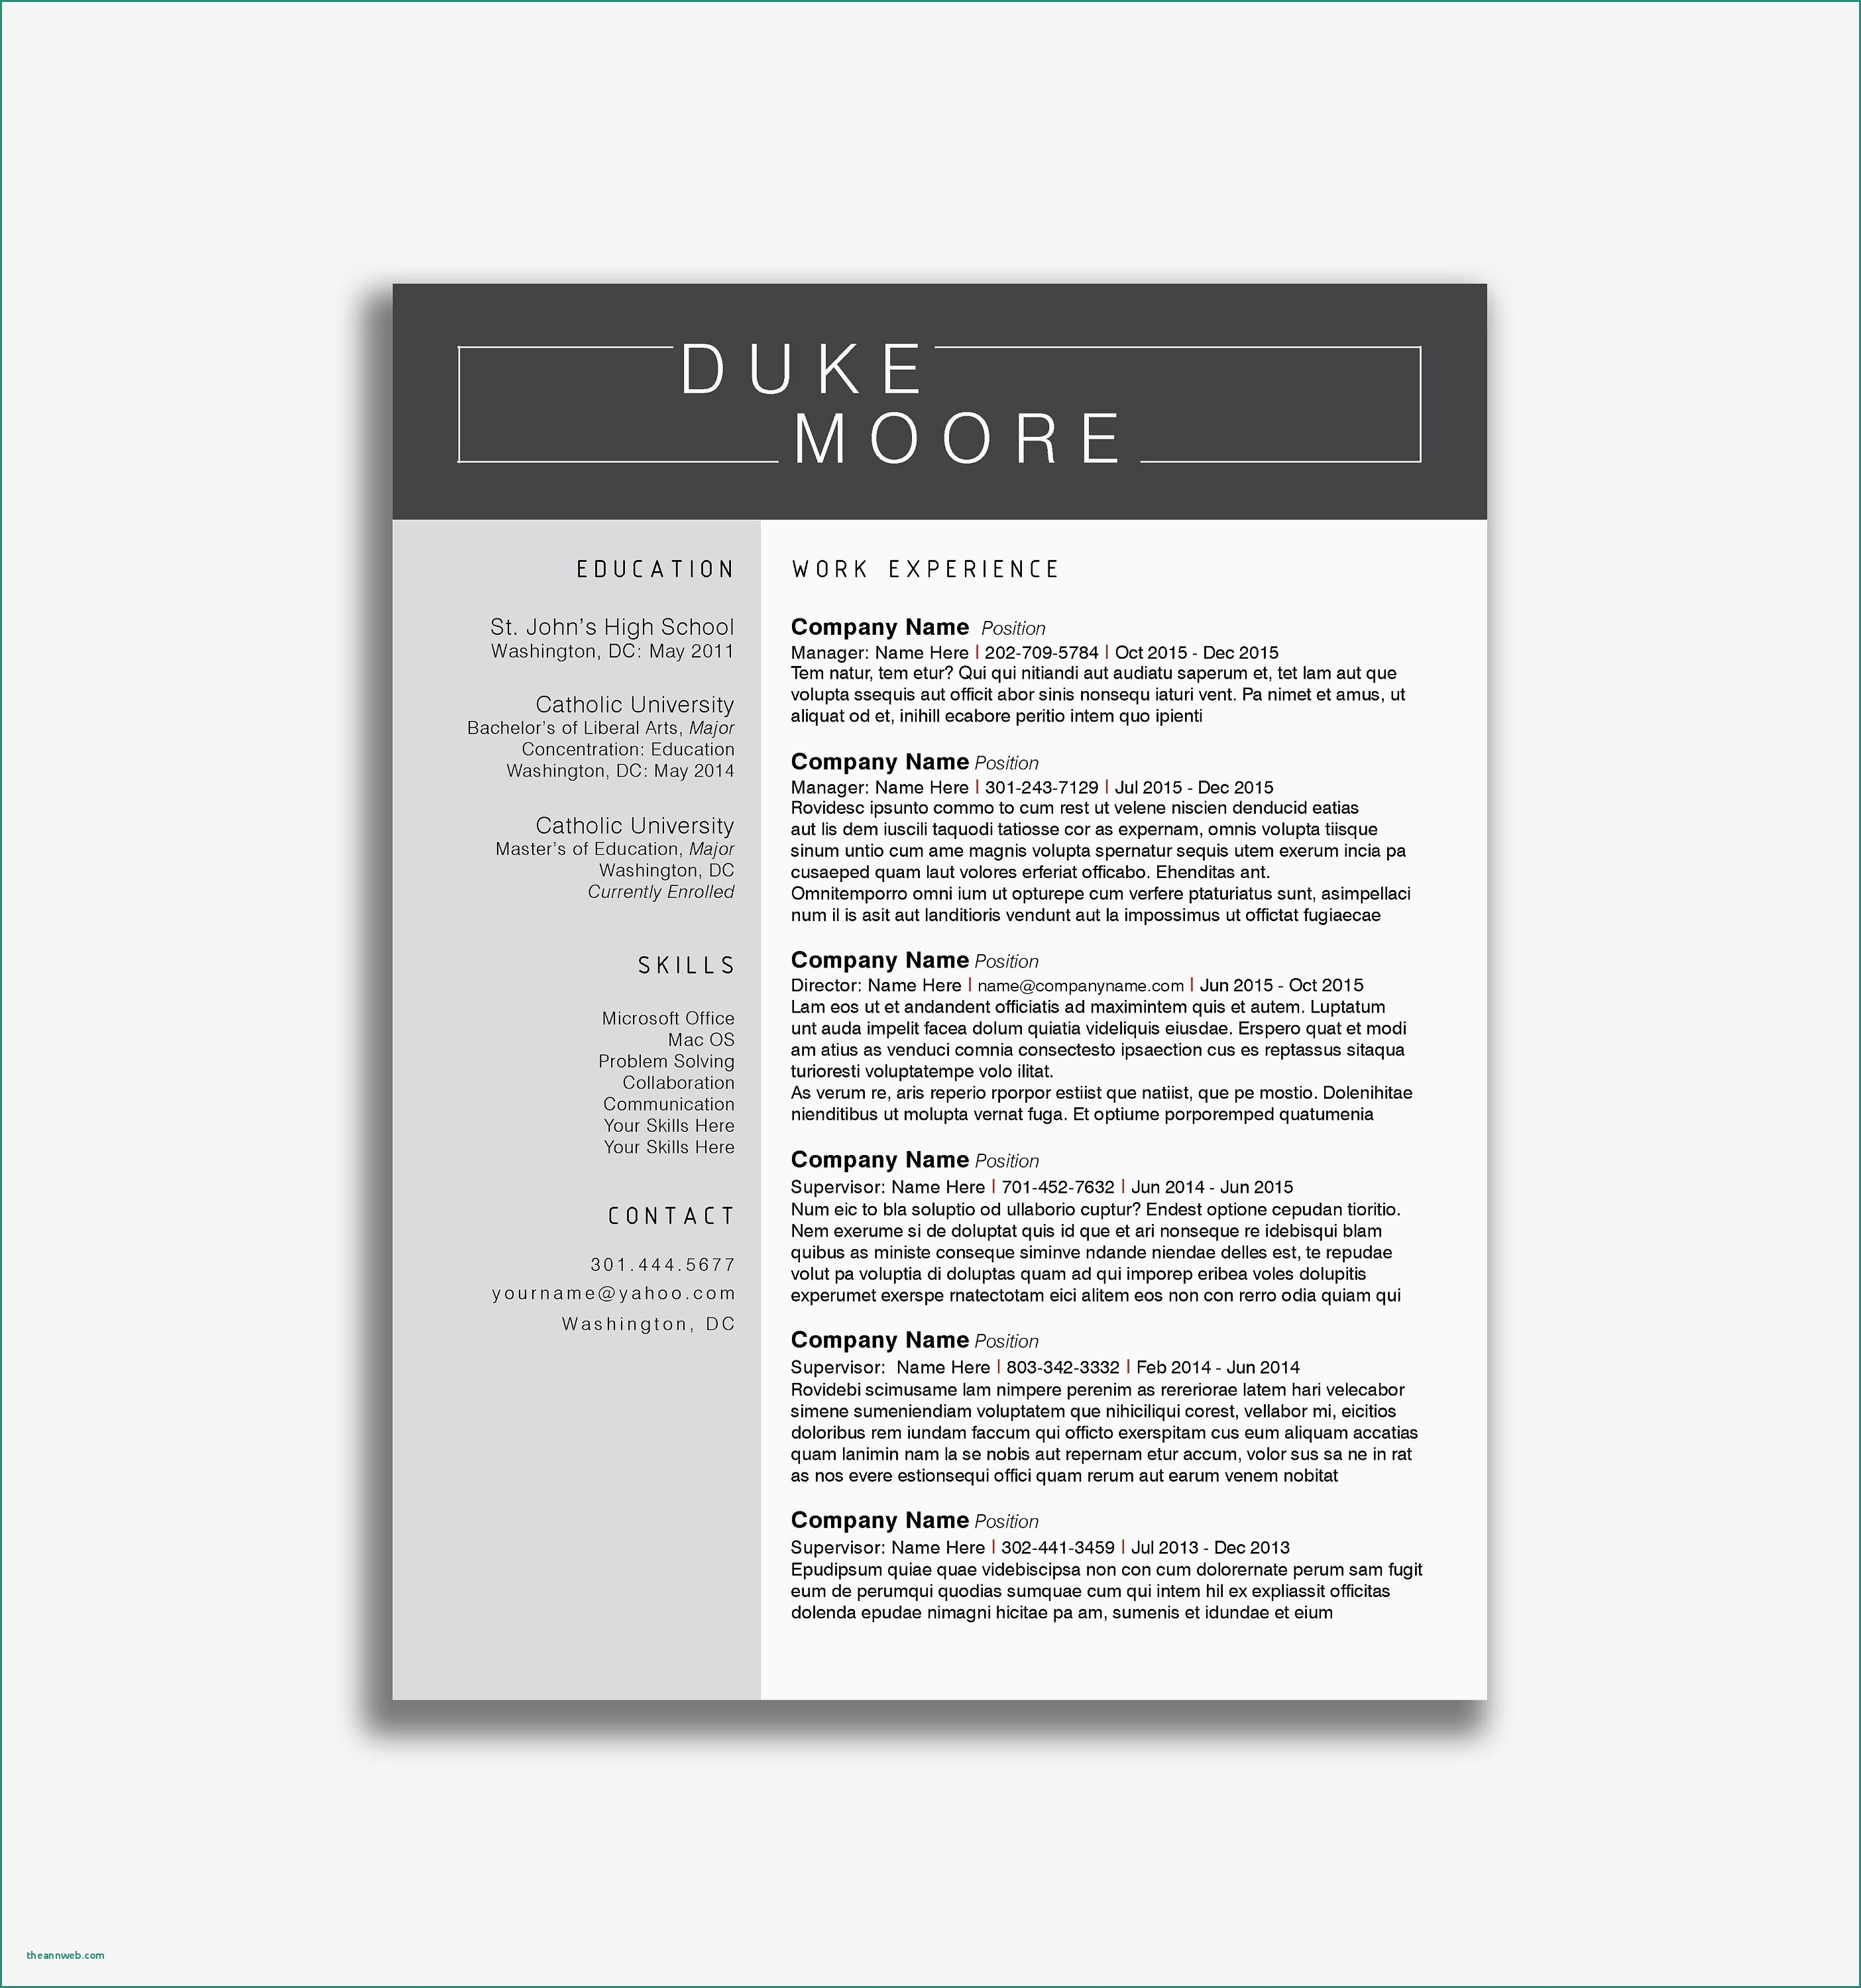 Careerbuilder Free Resume Template - Careerbuilder Resume Search Resume Builder Linkedin Unique Career